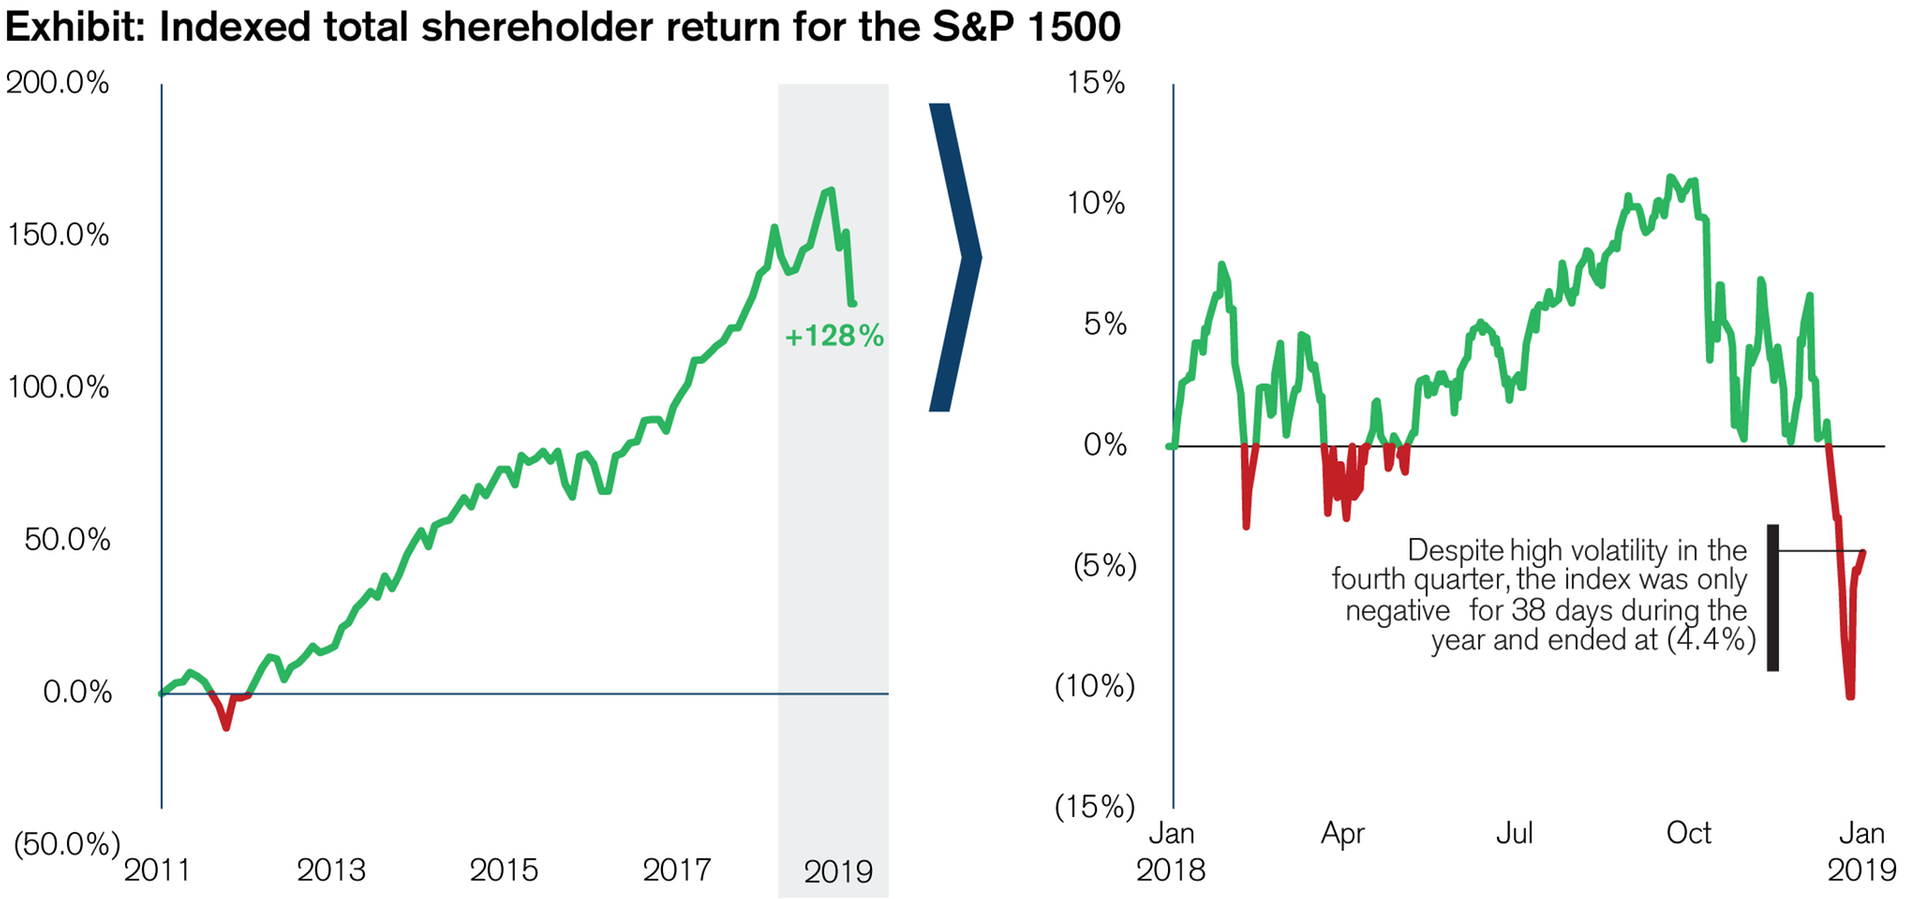 Indexed total shareholder return for the S&P 1500